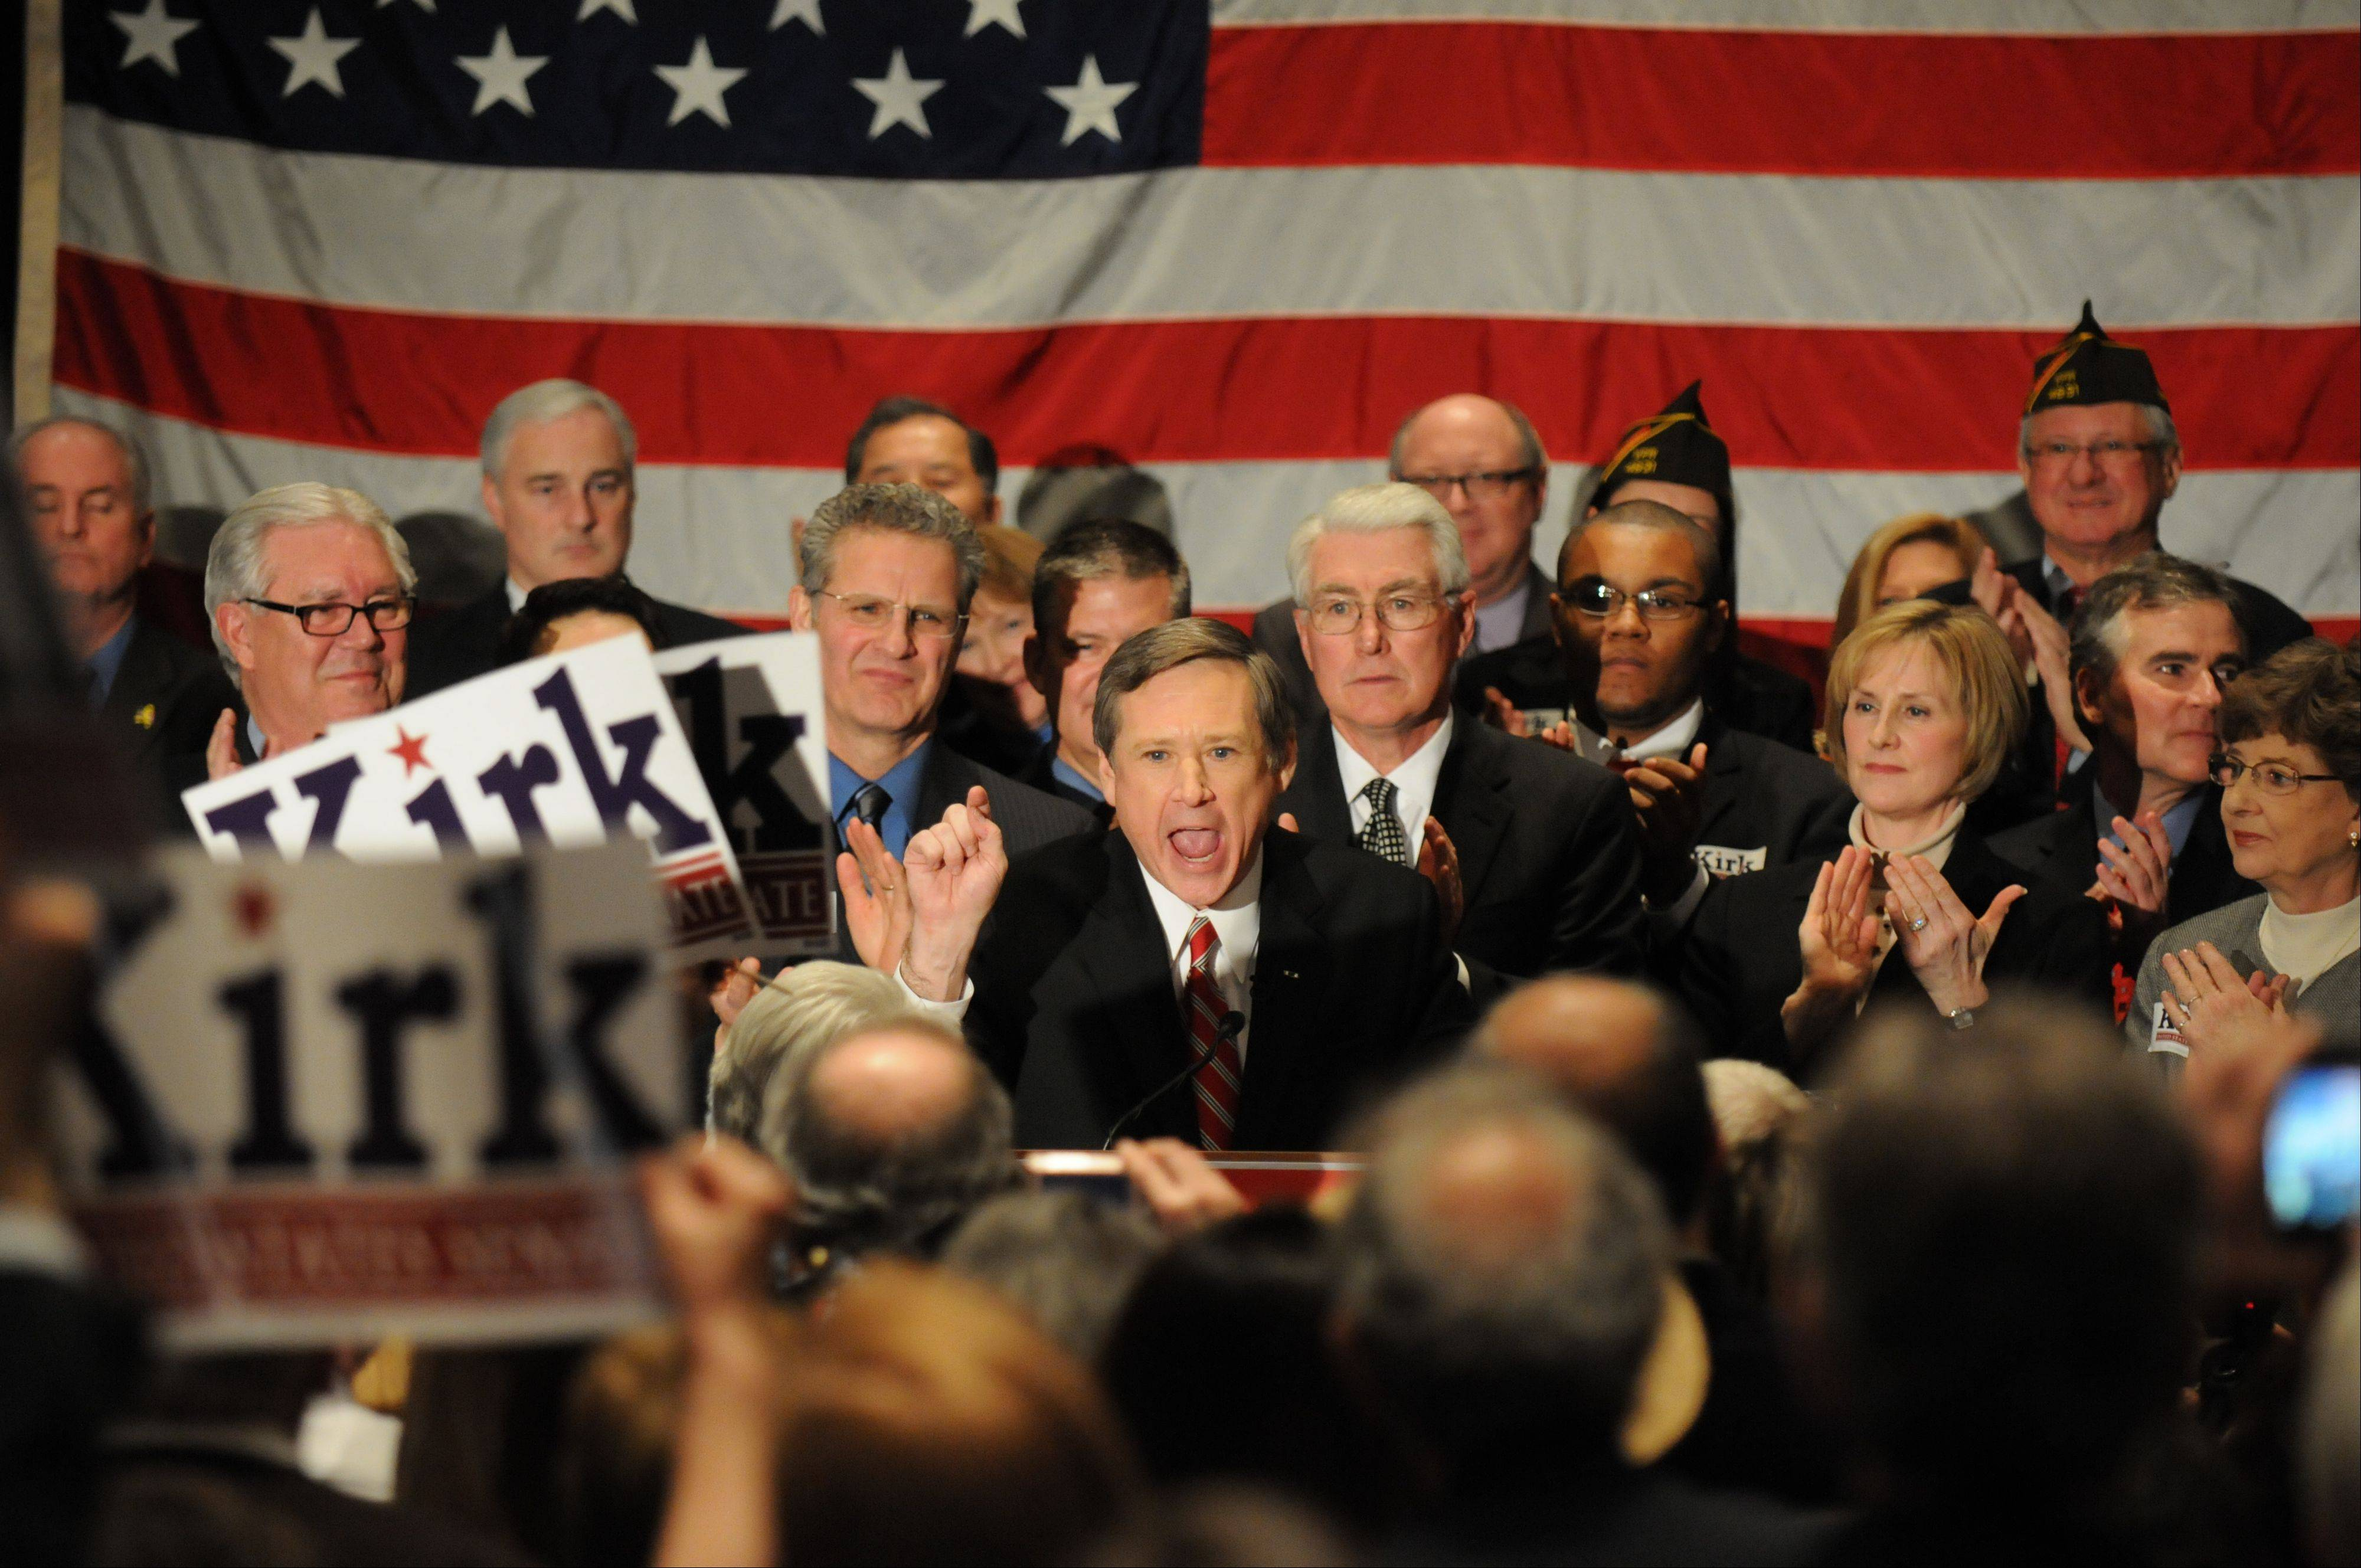 U.S. Congressman Mark Kirk greets the crowd in Wheeling, Ill. as he accepts the Republican nomination to run for the U.S. Senate seat, on Tuesday Feb. 2, 2010.